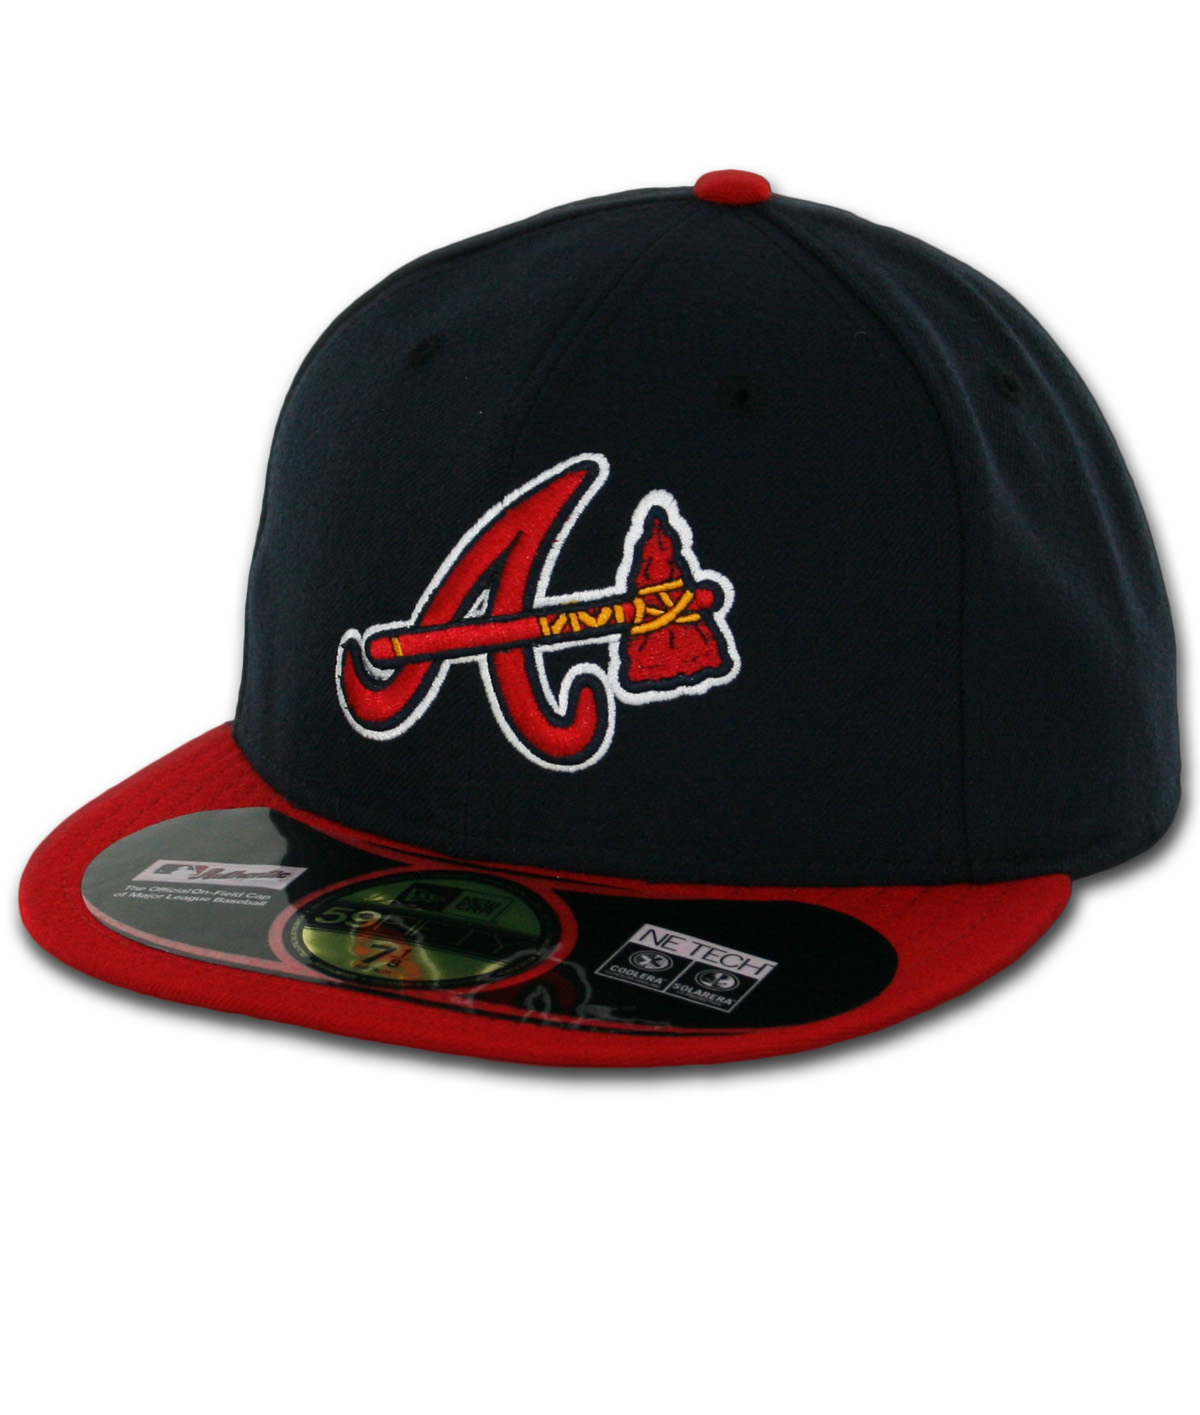 New Era 59Fifty Atlanta Braves 2016 Alternate Authentic On Field Fitted Hat